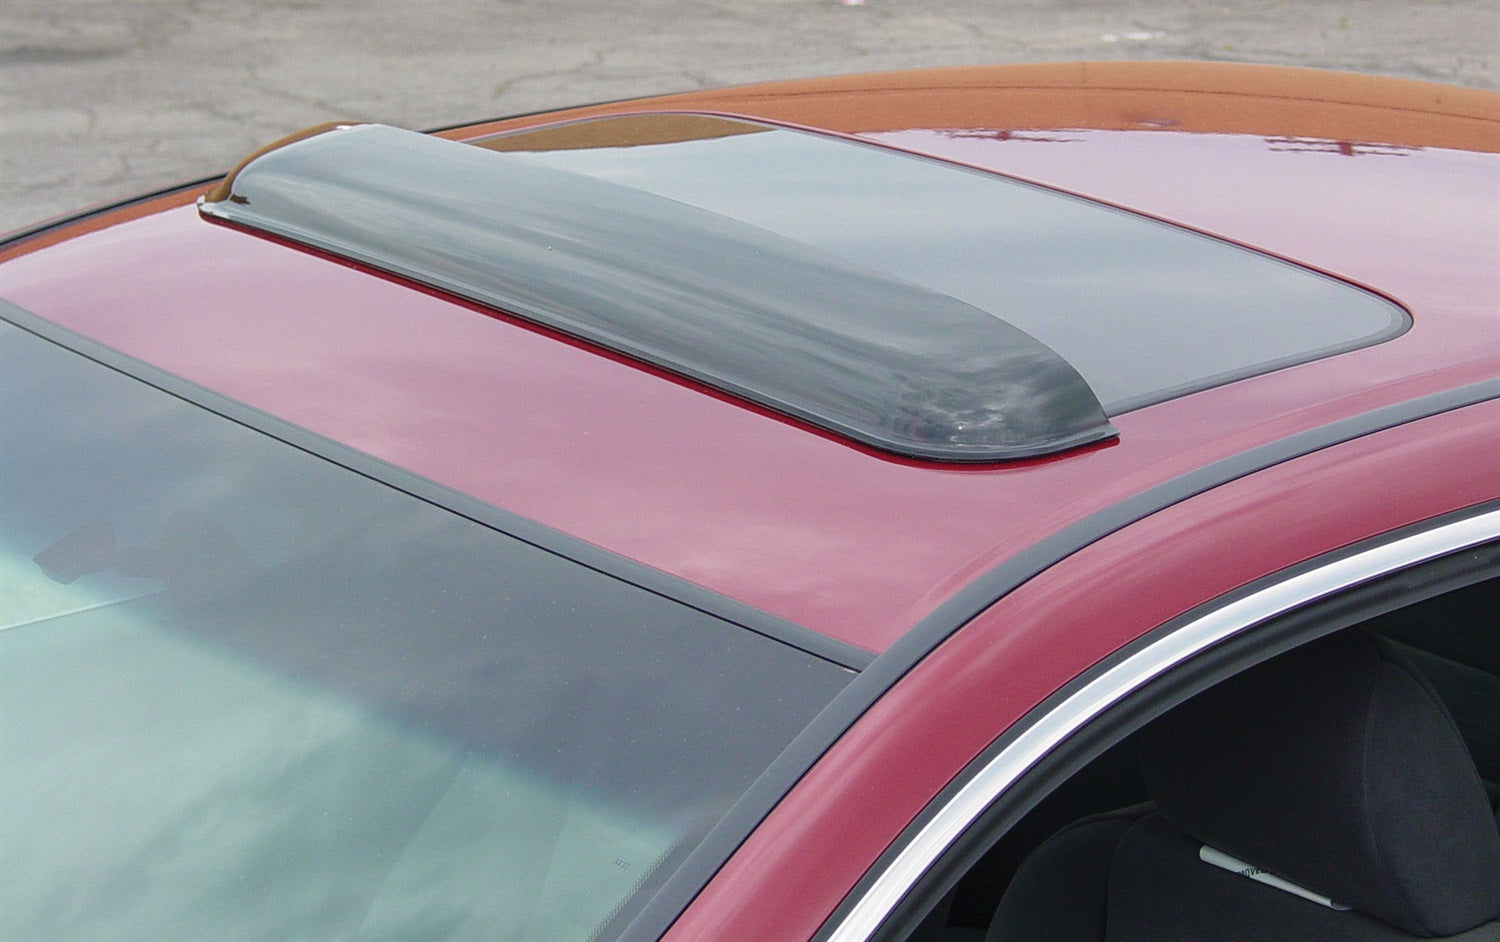 1995 Nissan 300ZX Sunroof Wind Deflector